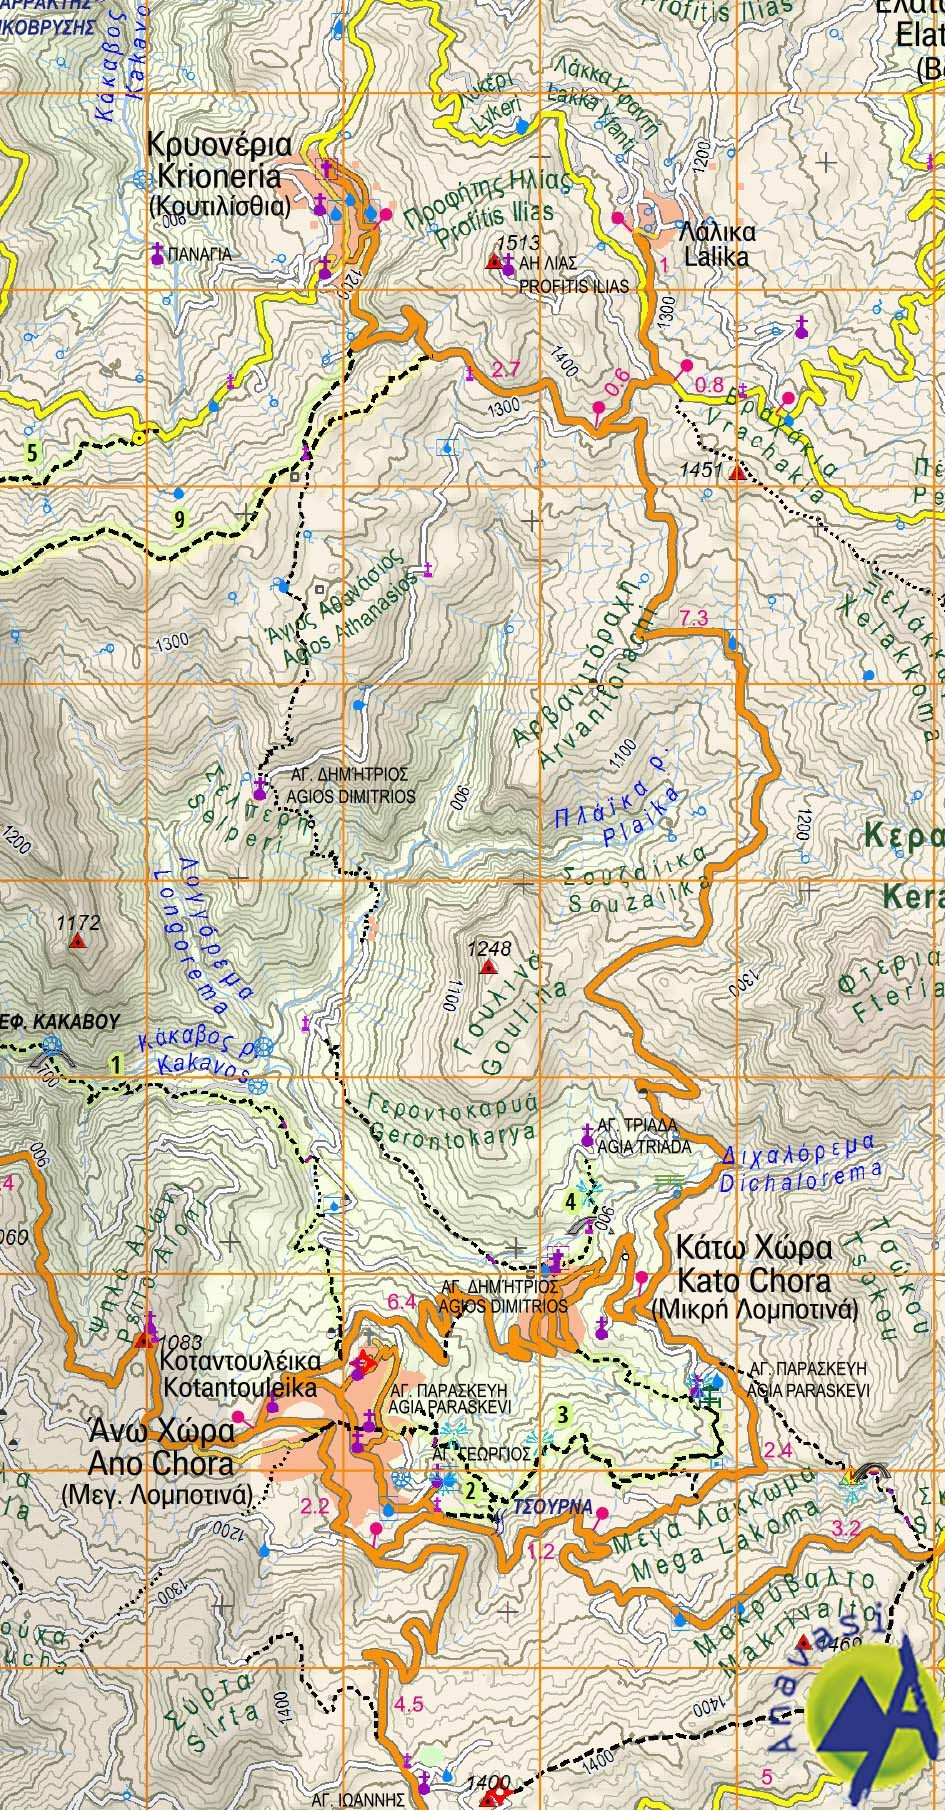 Nafpaktos - Panaitoliko - Karpenisi (Orini Nafpaktia / South Evritania) • Hiking map 1:50 000